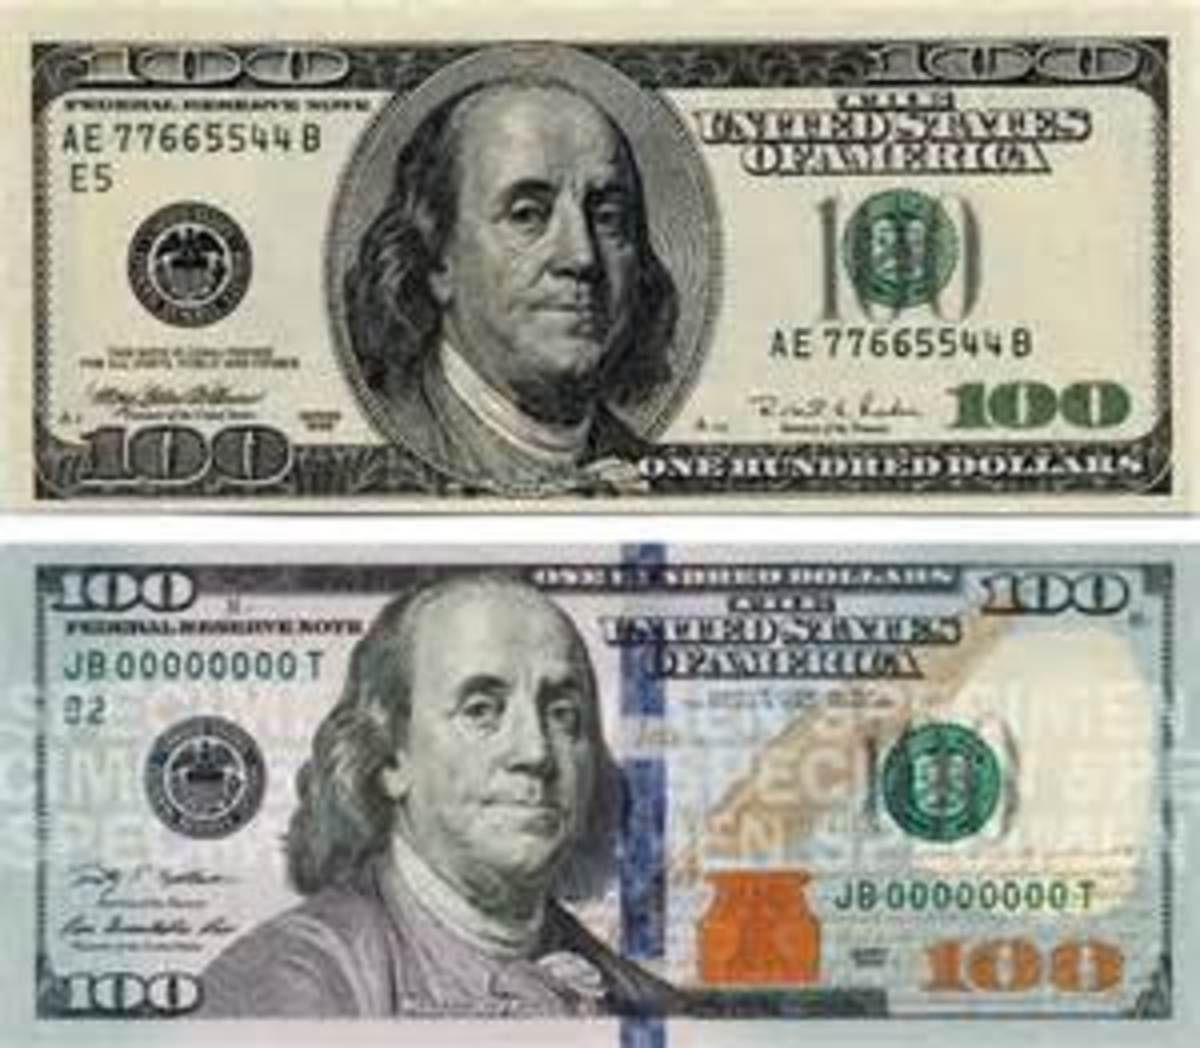 The old C-note and the new one